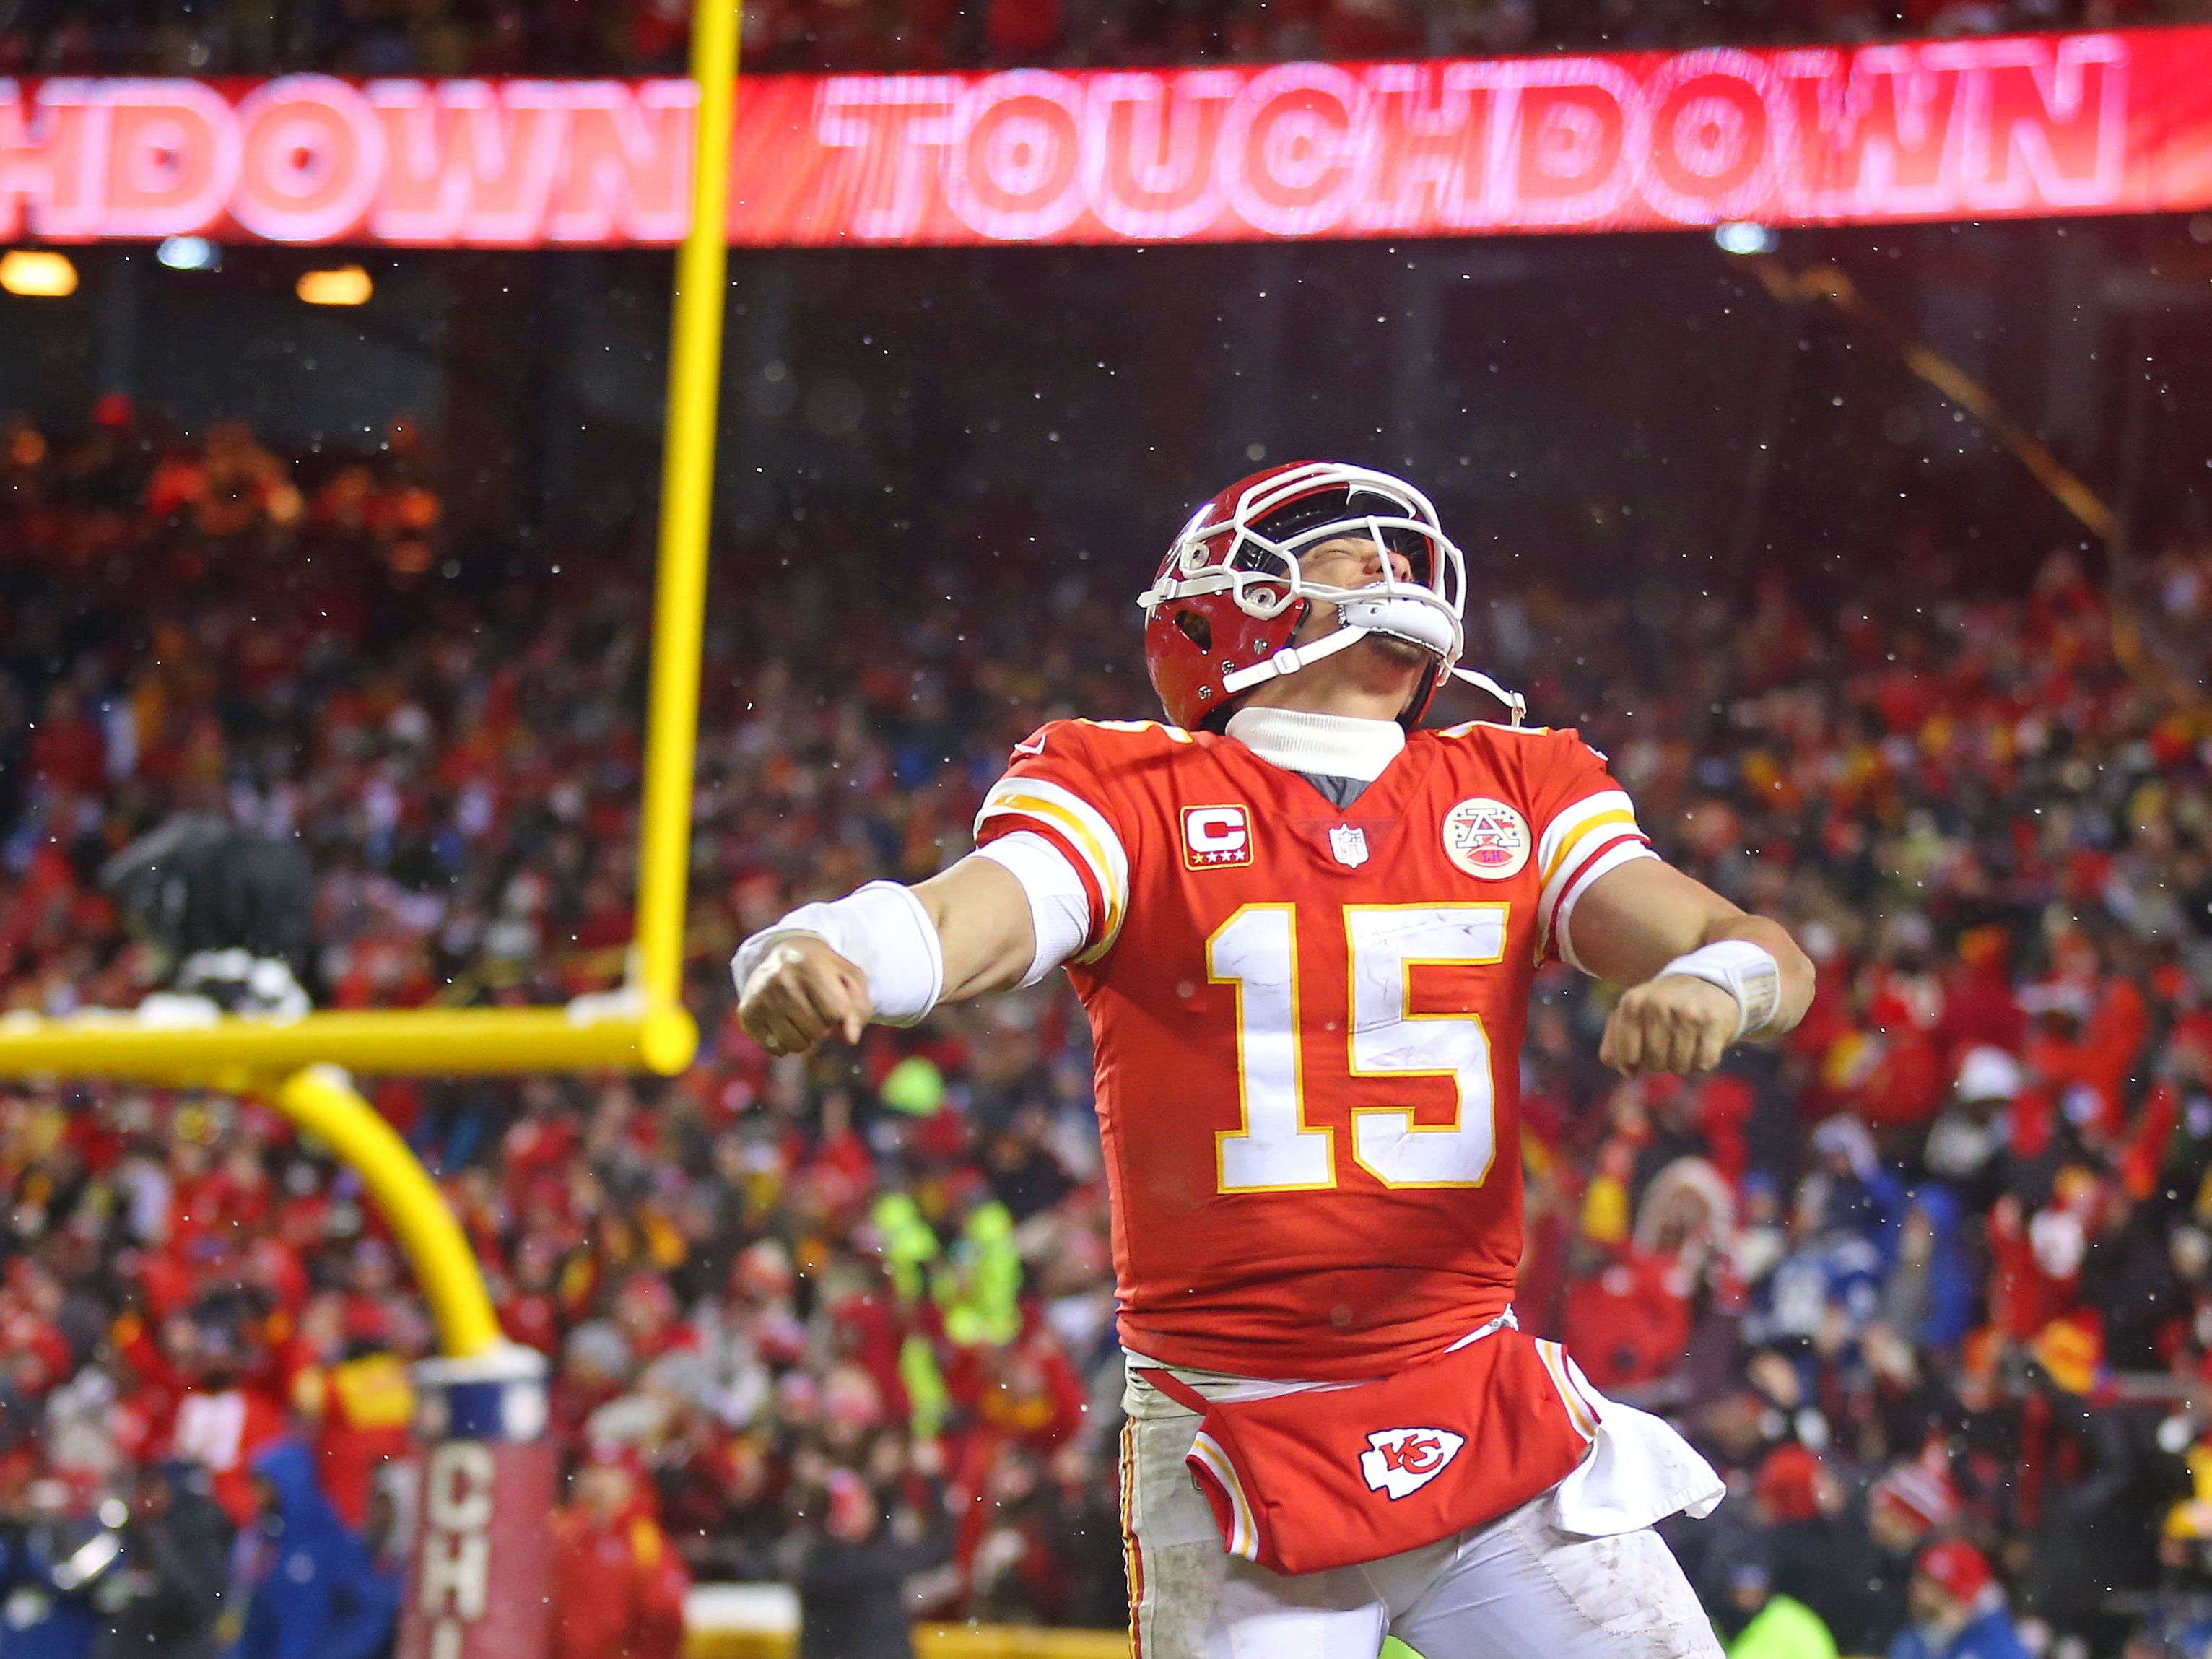 Kansas City Chiefs quarterback Patrick Mahomes celebrates after a touchdown  against the Indianapolis Colts in the AFC divisional playoff game at Arrowhead Stadium.